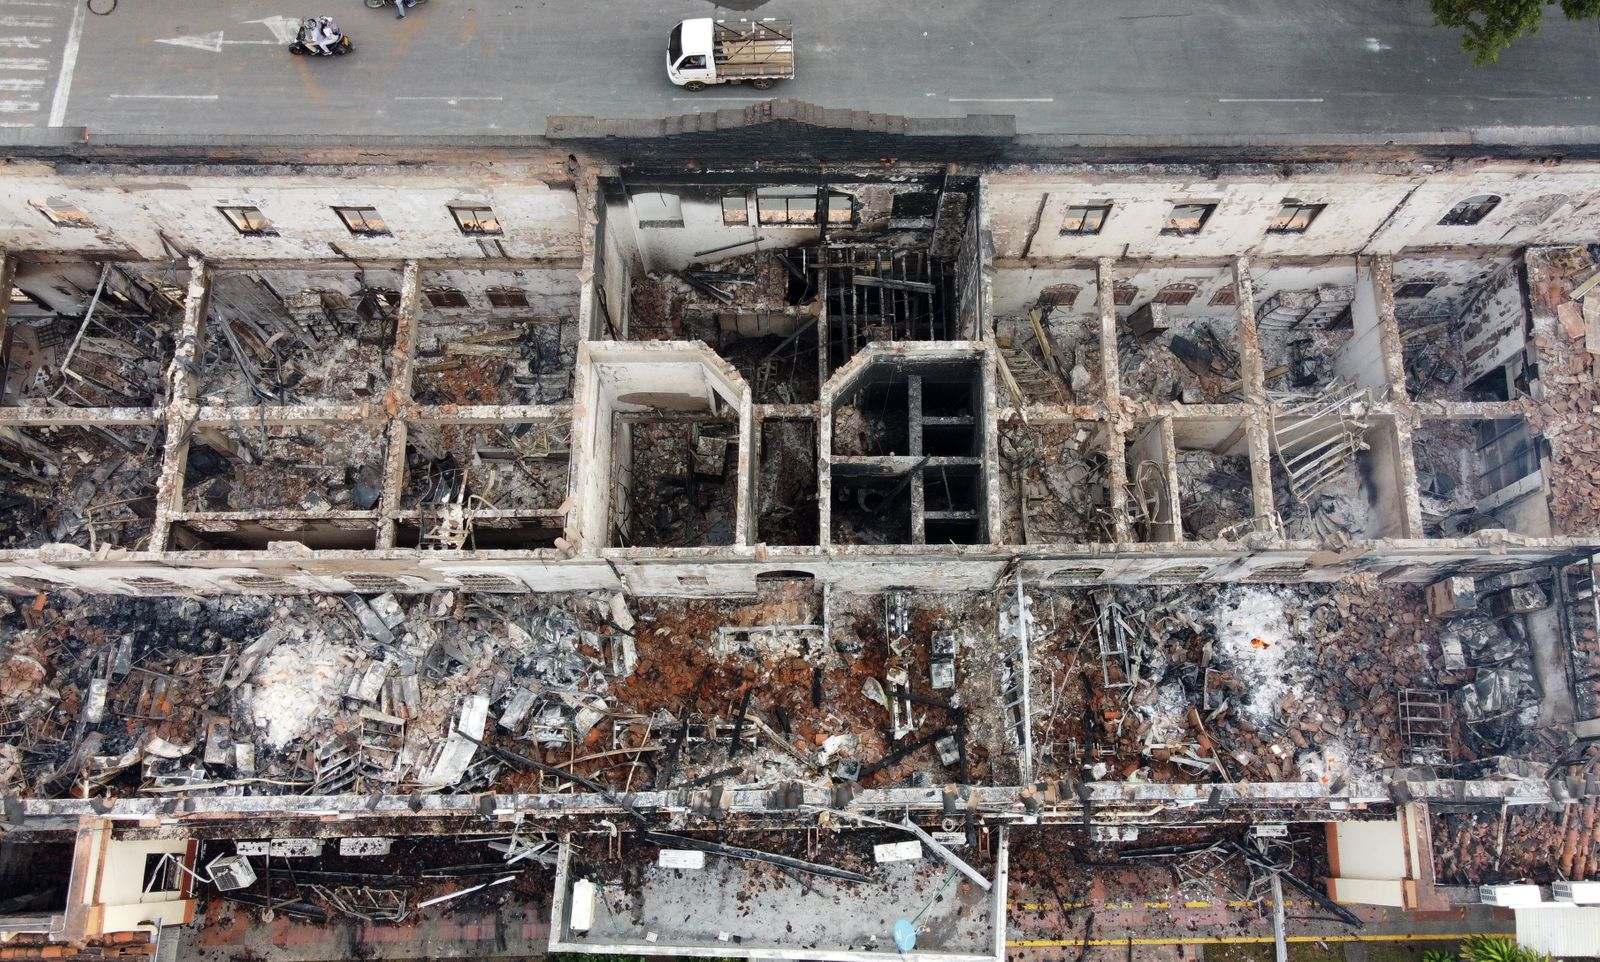 A mob sets fire to the Palace of Justice in the Colombian city of Tulua